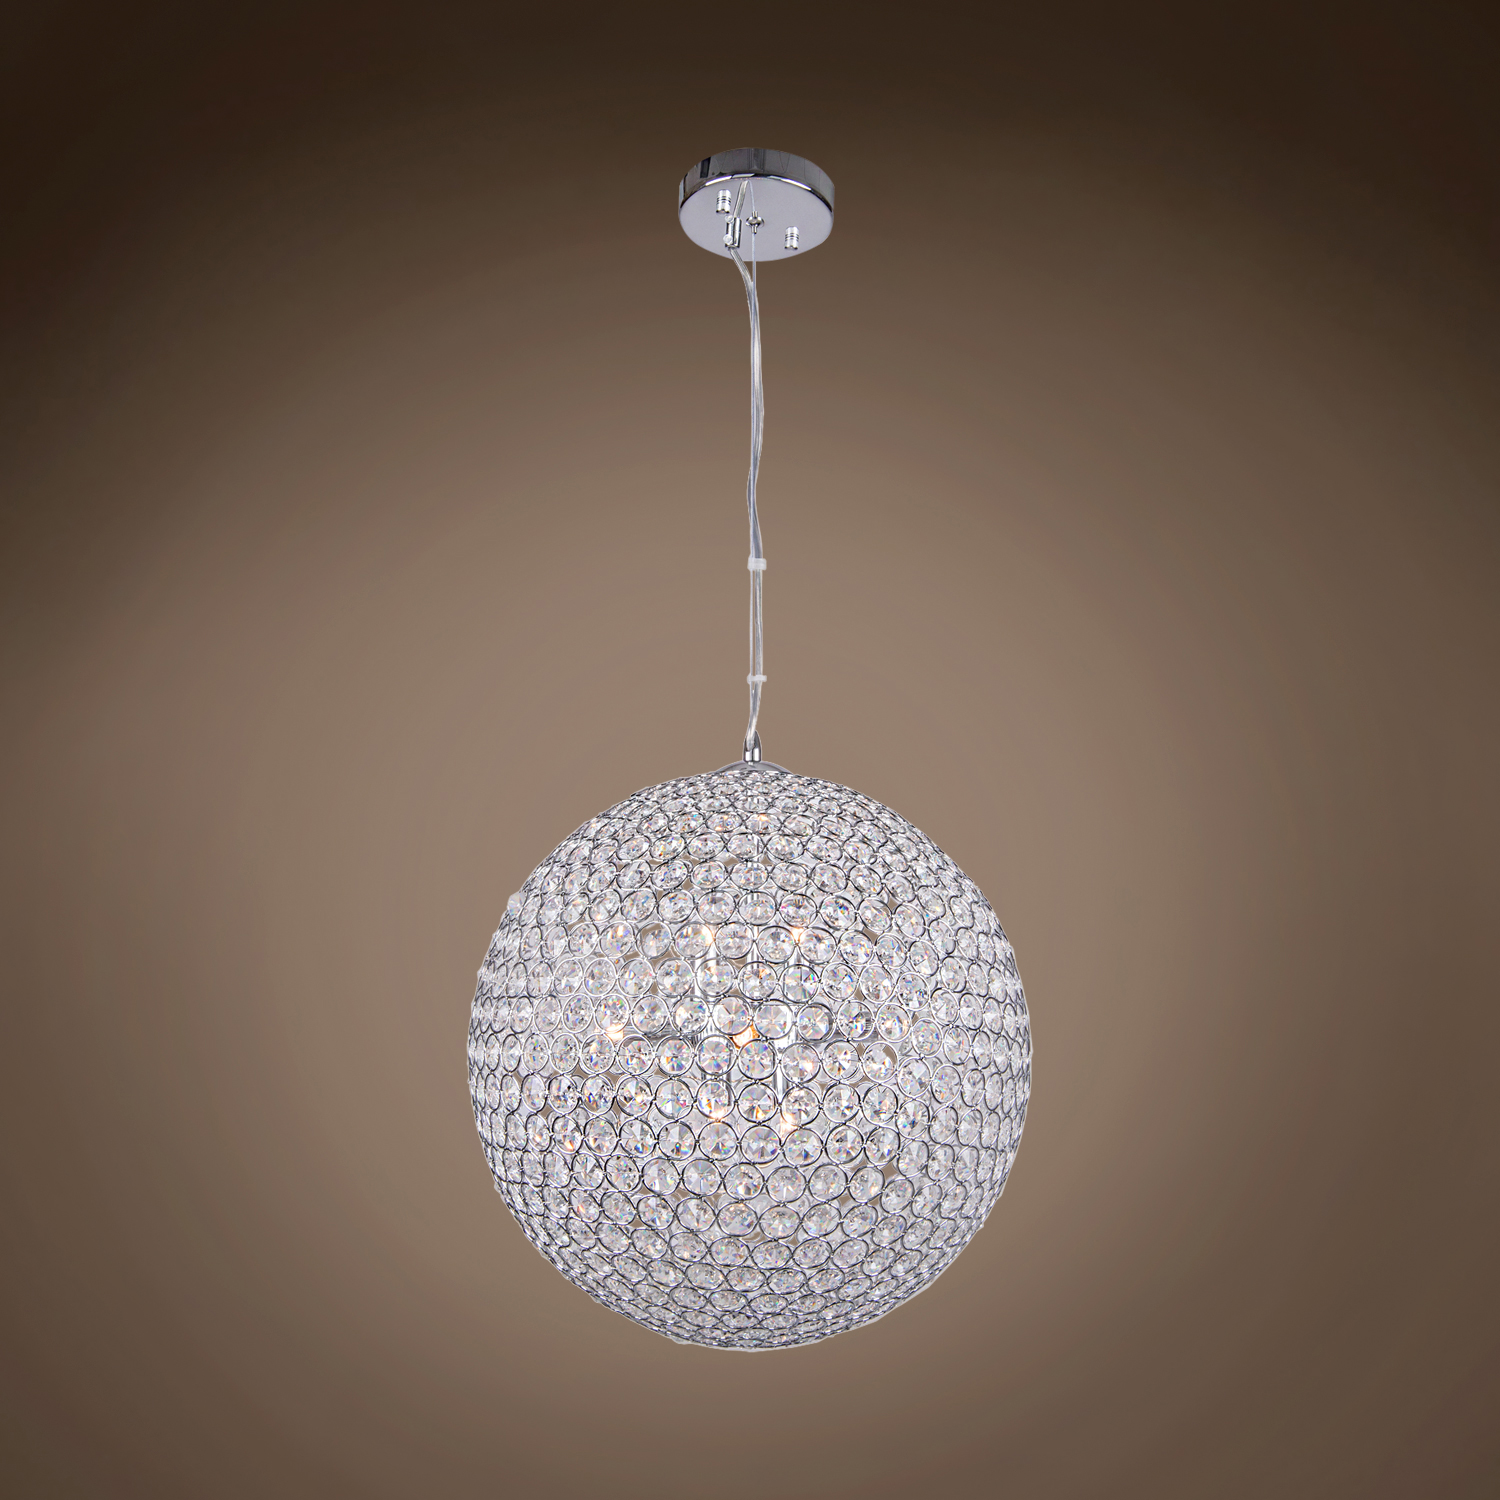 Image of: Joshua Marshal Limited Edition 8 Light 14 Crystal Globe Pendant Light In Chrome Finish 7014 From Limited Edition Collection